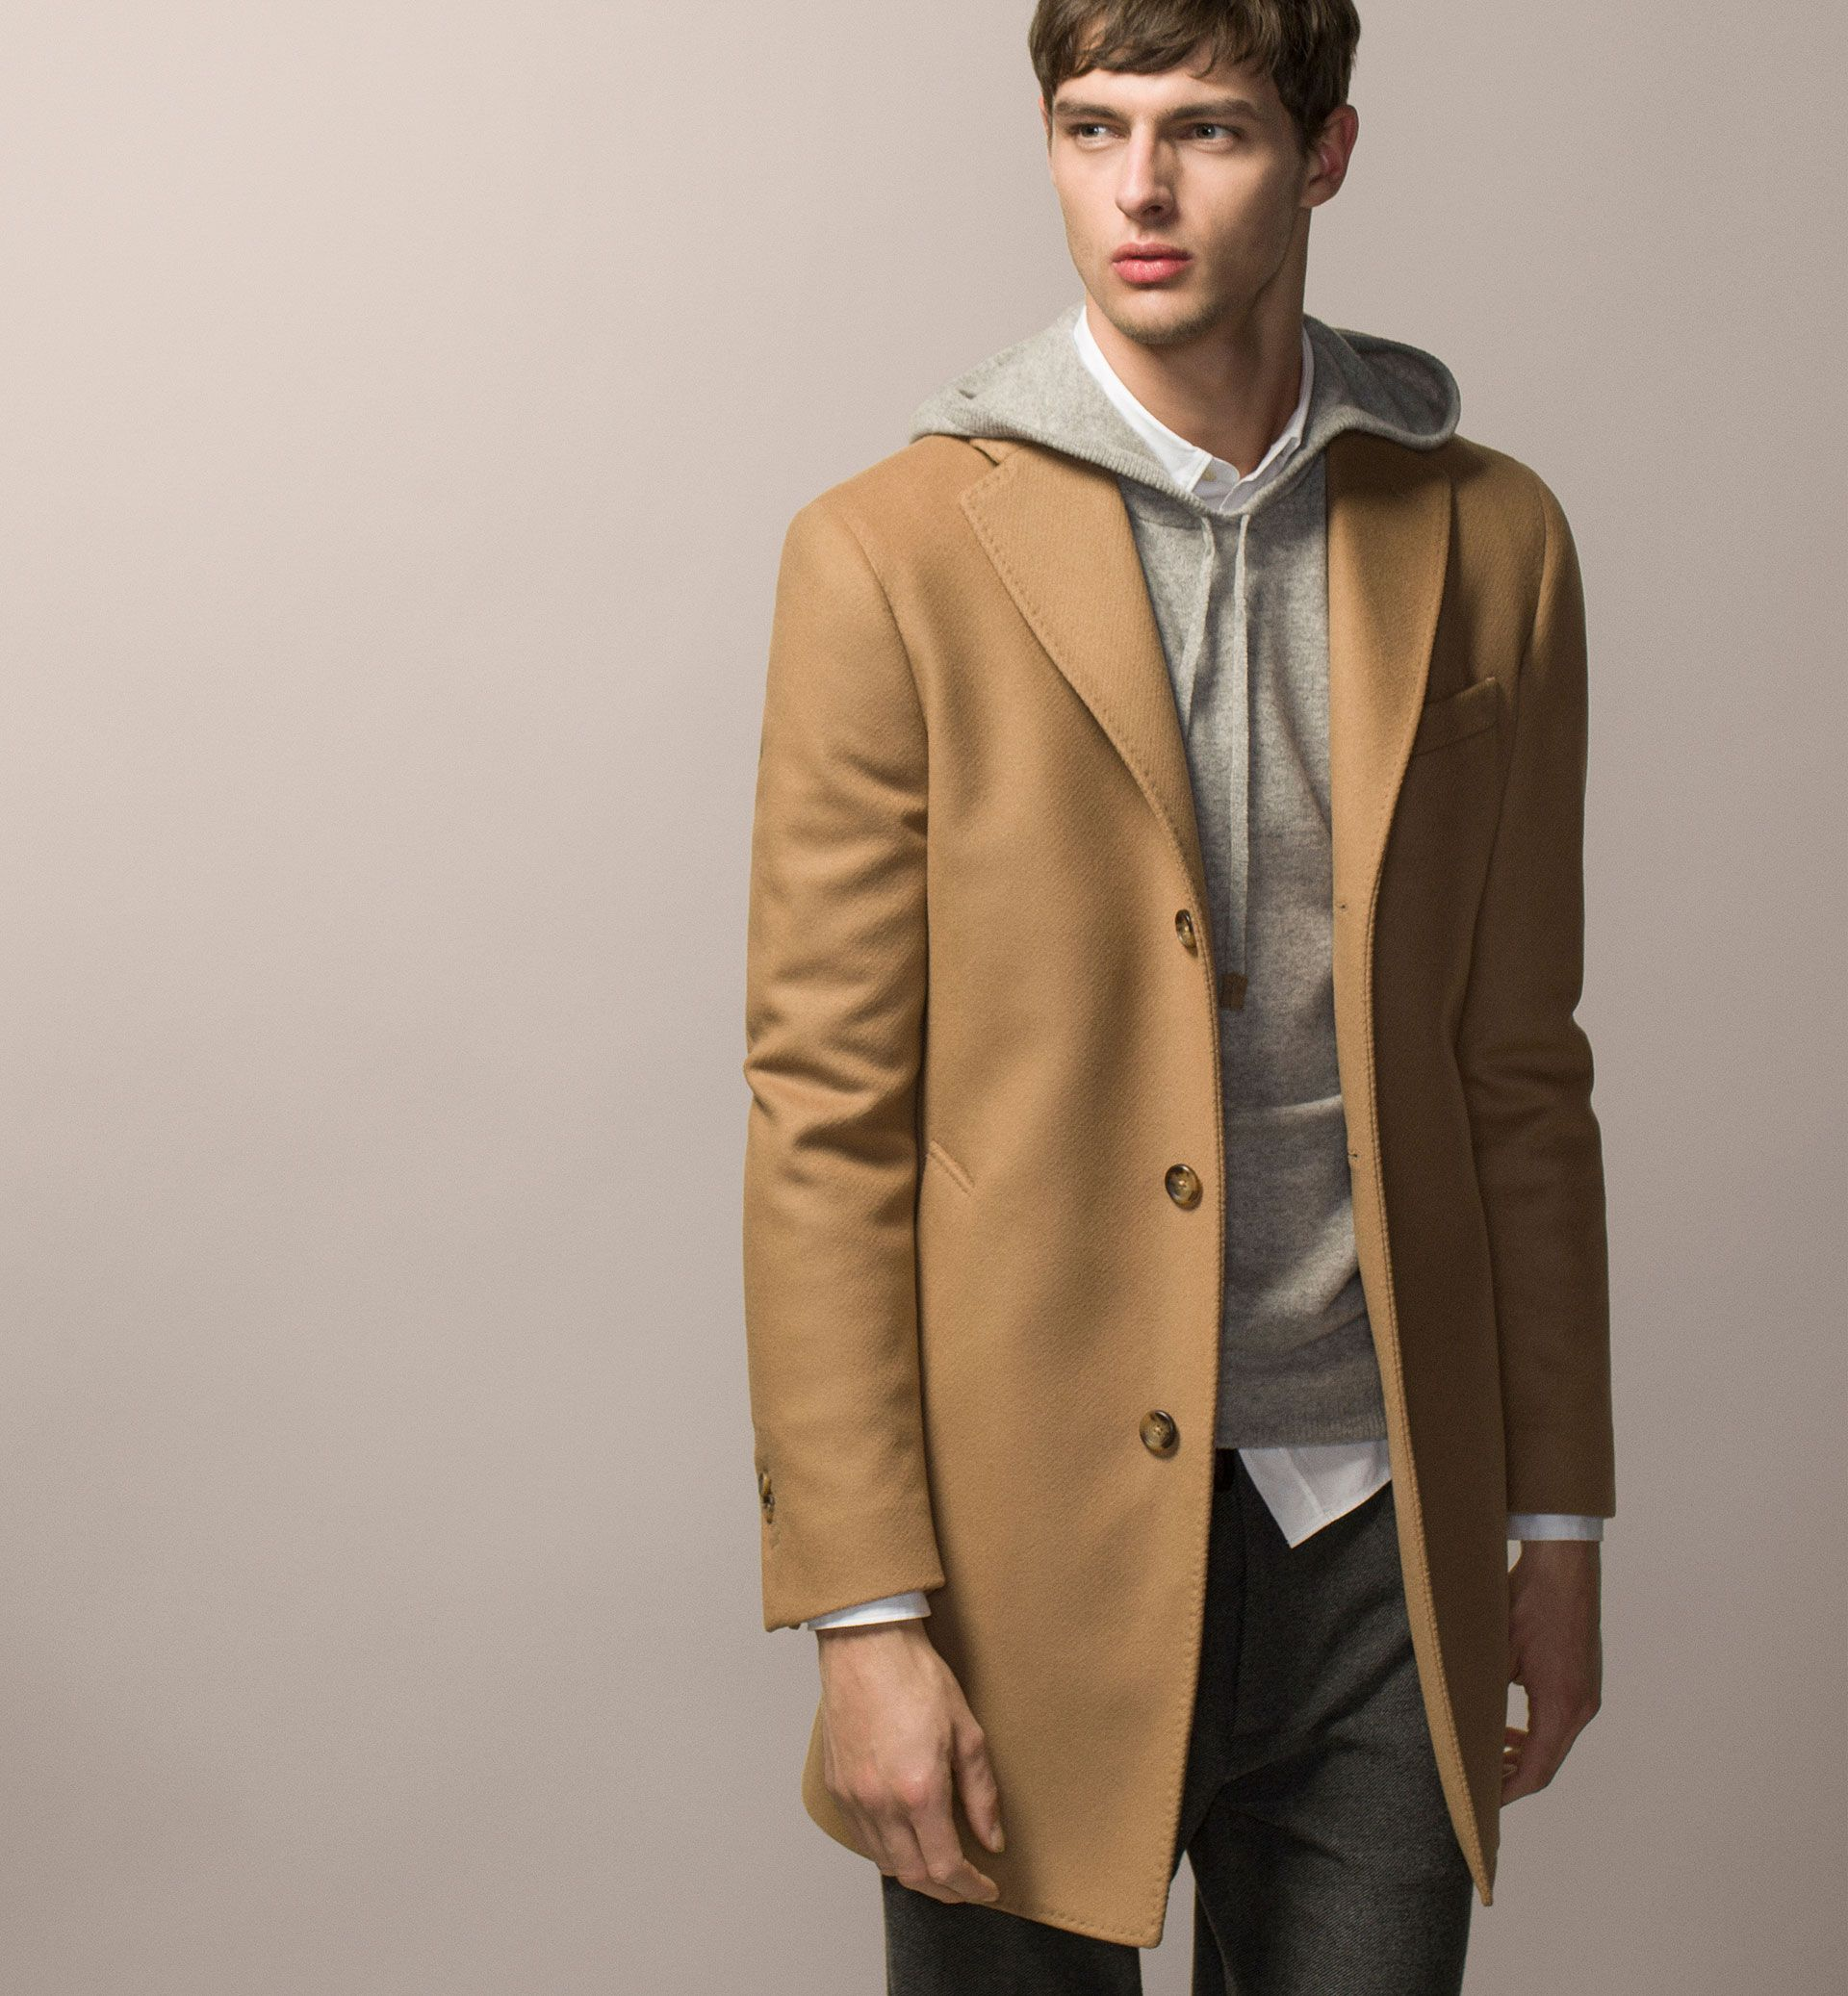 Mens jacket camel - Beat The Cold Weather Winter Coats To Splurge On Right Now Double Breasted Trench Coatcamel